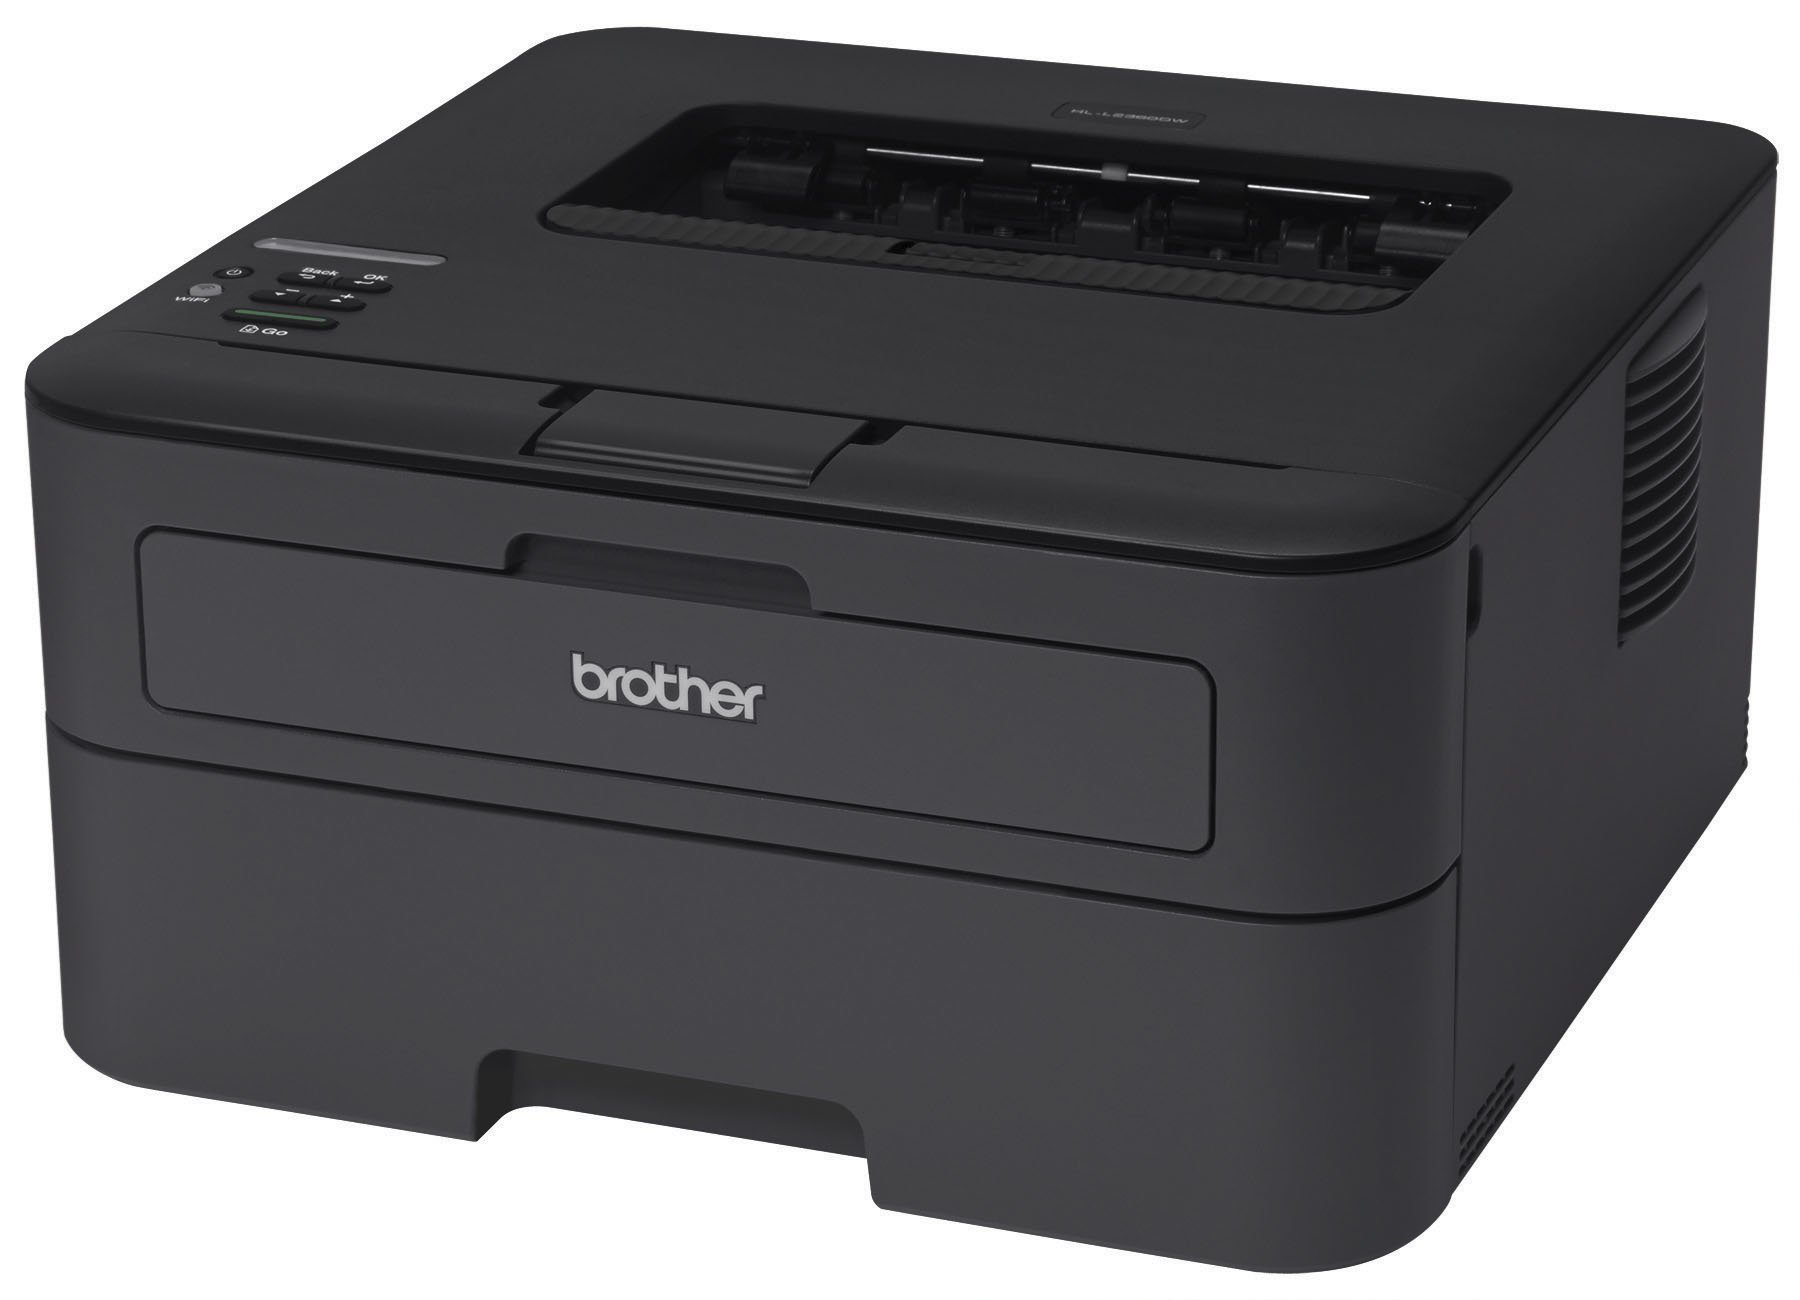 Brother Printer EHLL2340DW Wireless Monochrome Printer (Certified Refurbished) by Brother (Image #2)